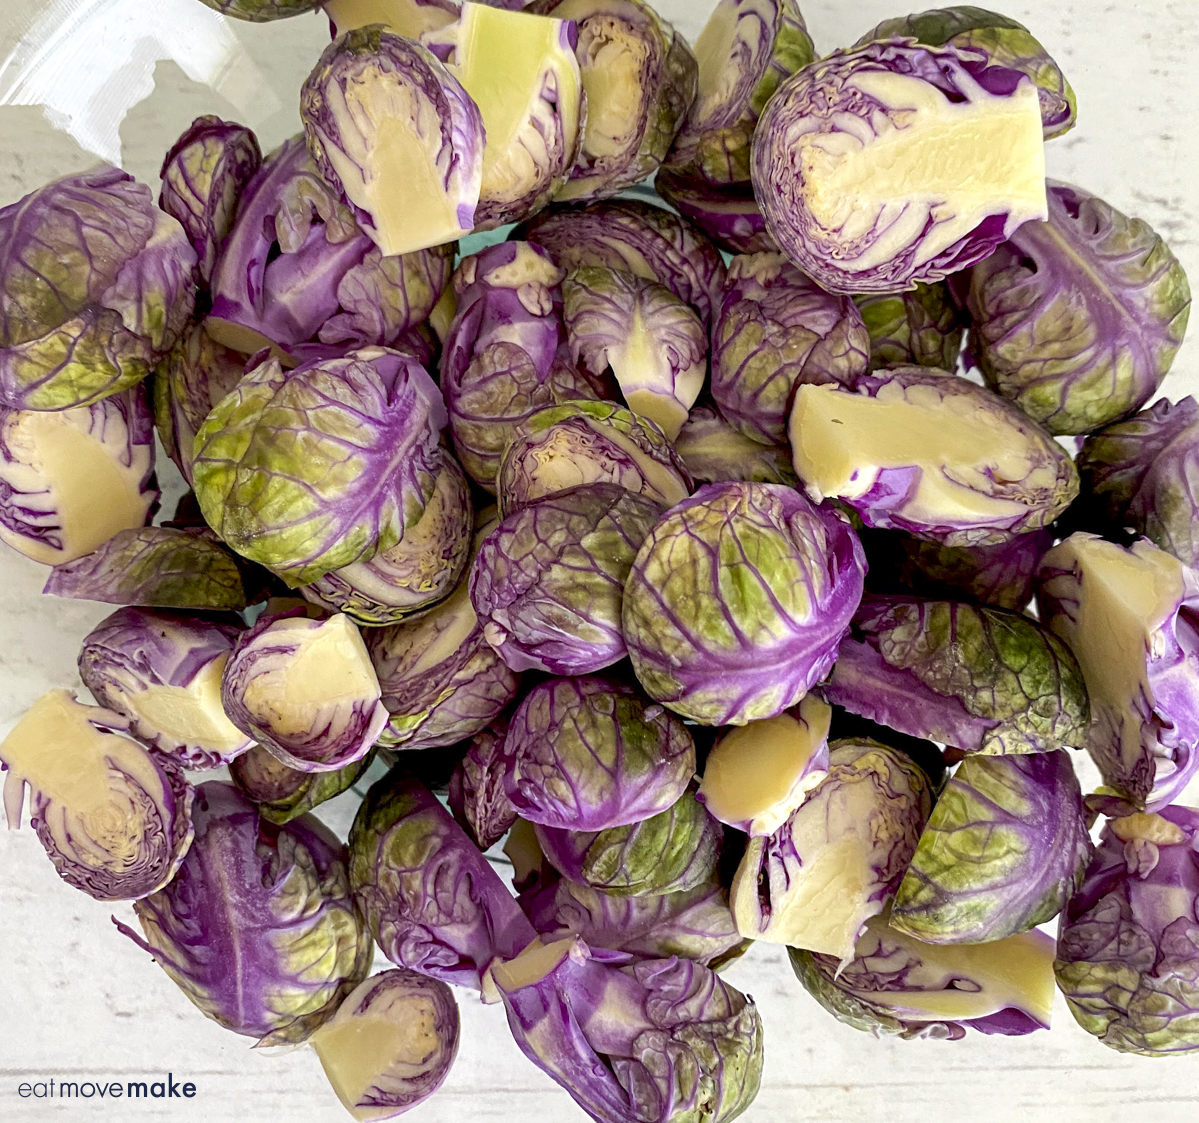 trimmed and cut purple brussels sprouts